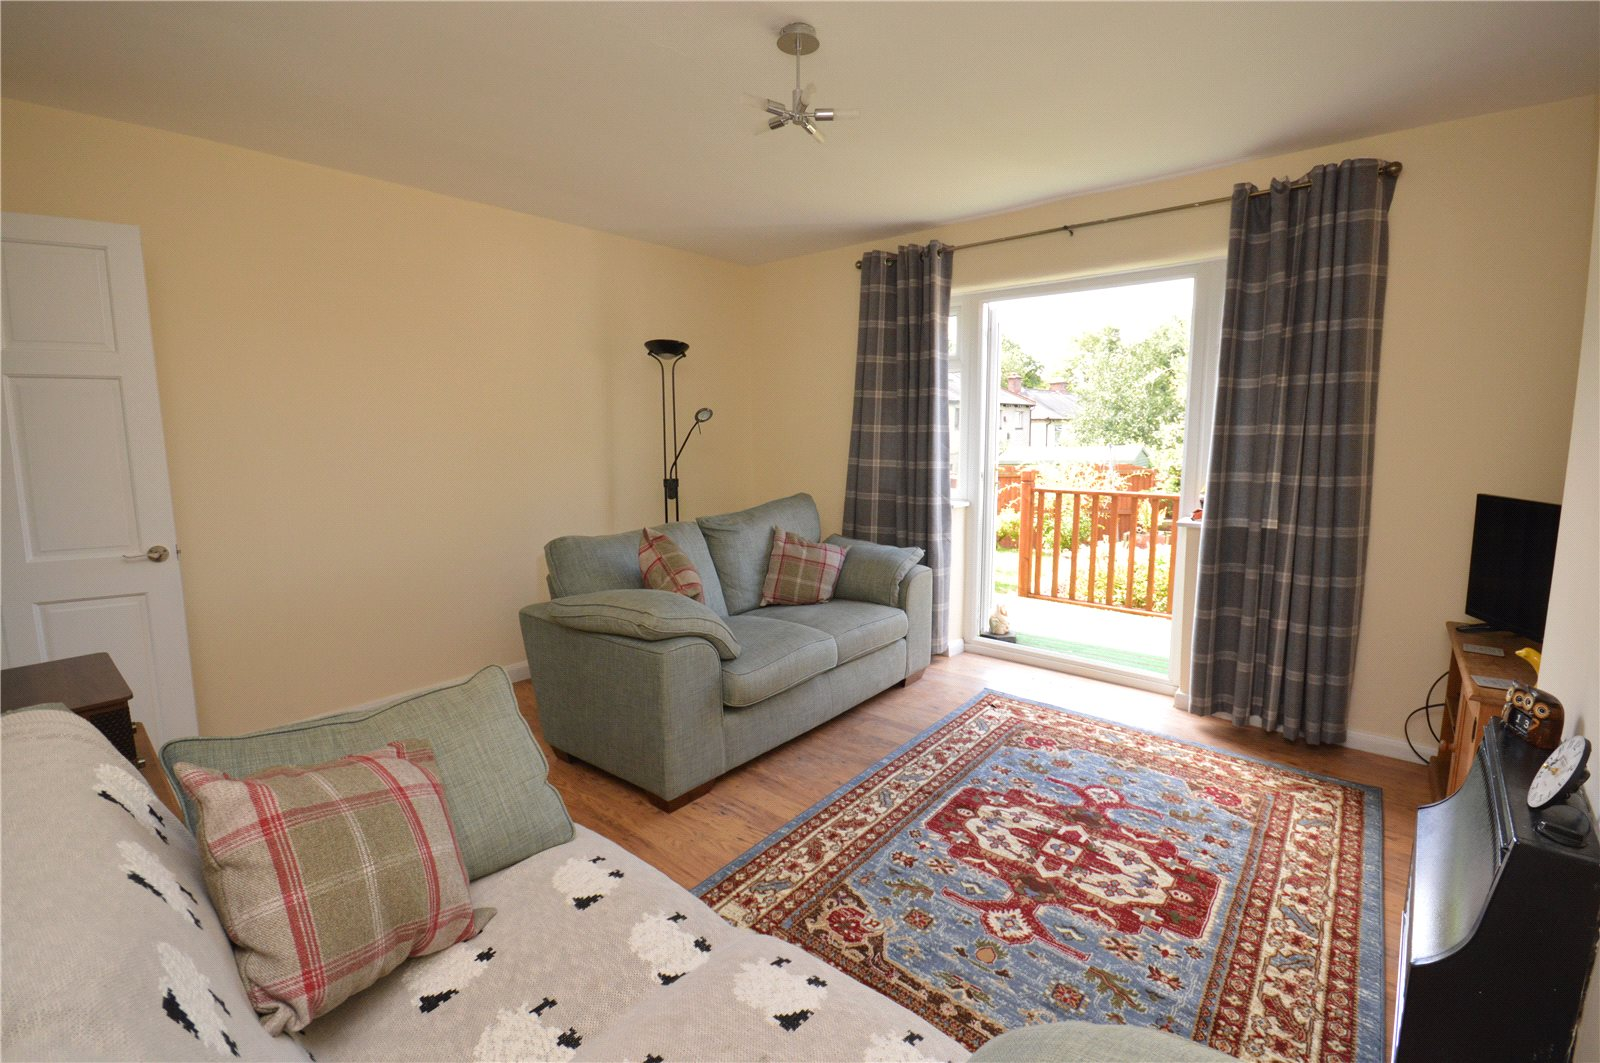 Property for sale in Horsforth, living room area, two sofas, well decorated